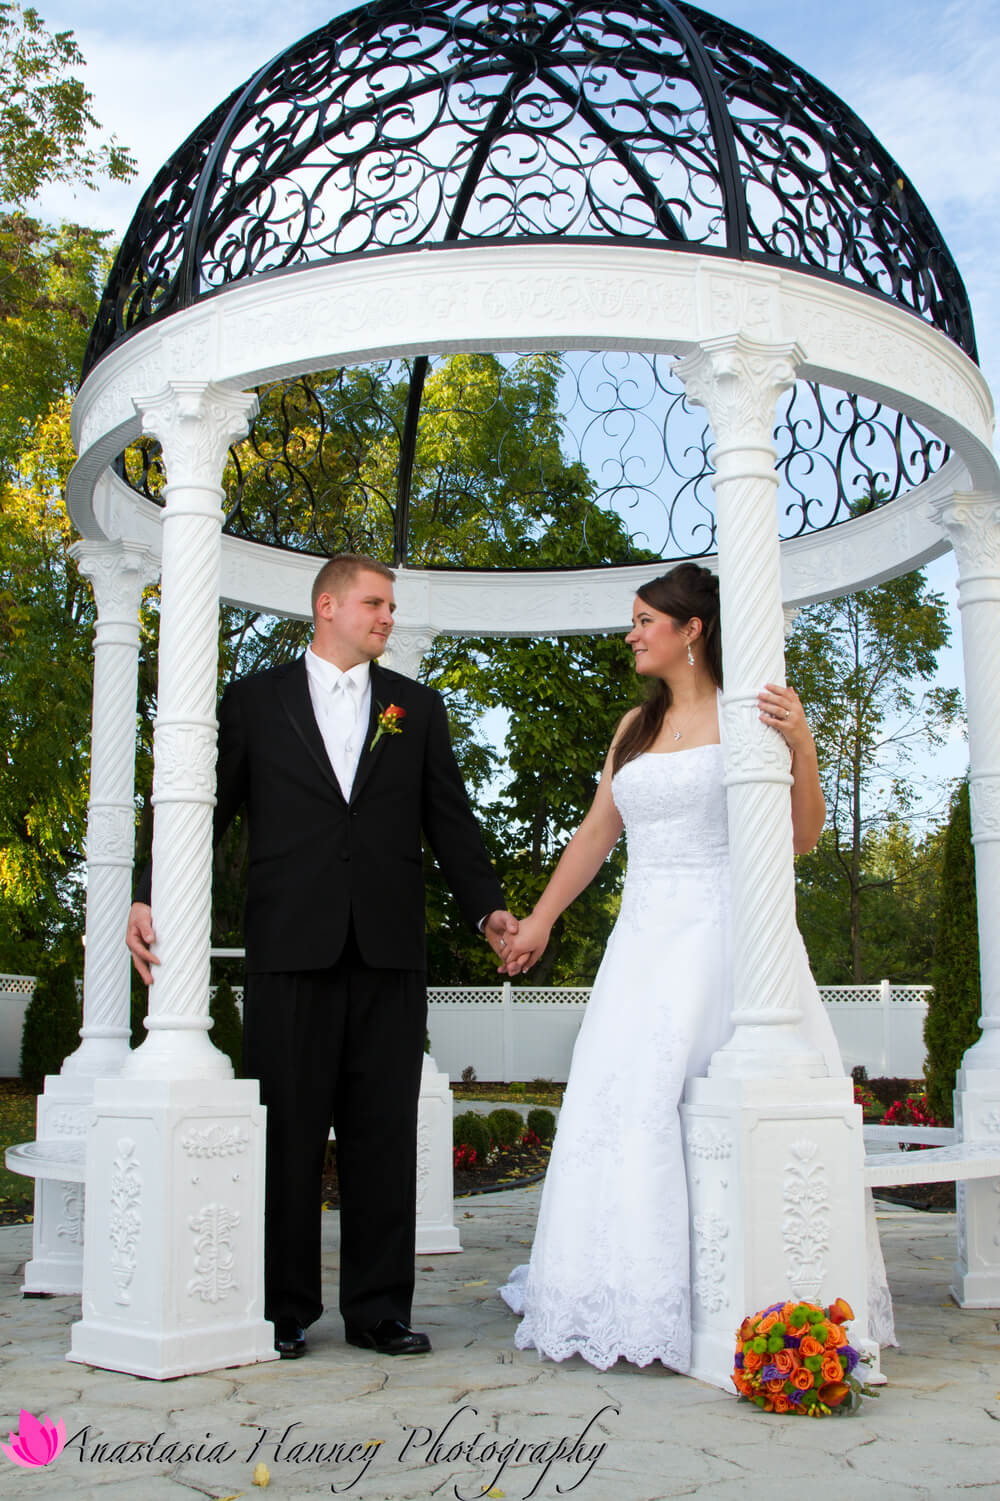 Wedding Photography of Bride and Groom Holding Hands in Gazebo at The Palace in Blackwood New Jersey by Anastasia Hanney Photography AHanneyPhoto